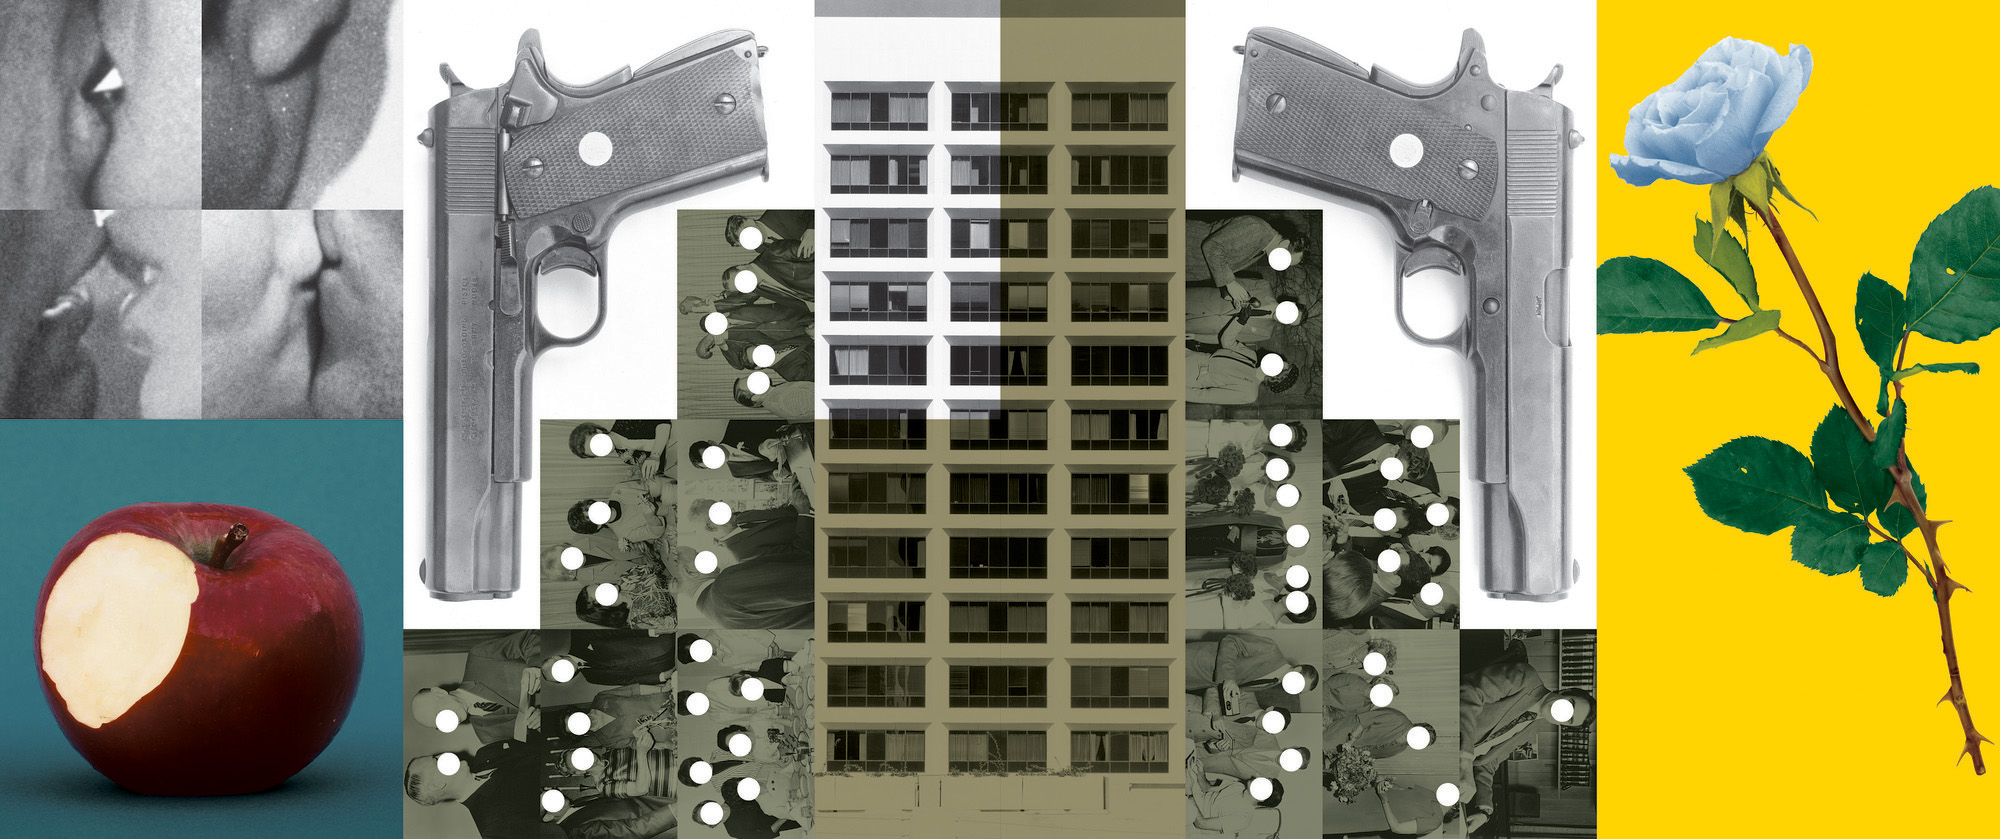 John Baldessari, <em>Buildings=Guns=People: Desire, Knowledge, and Hope (with Smog)</em>, 1985/1989. Black-and-white photographs, color photographs, vinyl paint, oil tint, 15.5 x 37 ft. Courtesy of the artist.